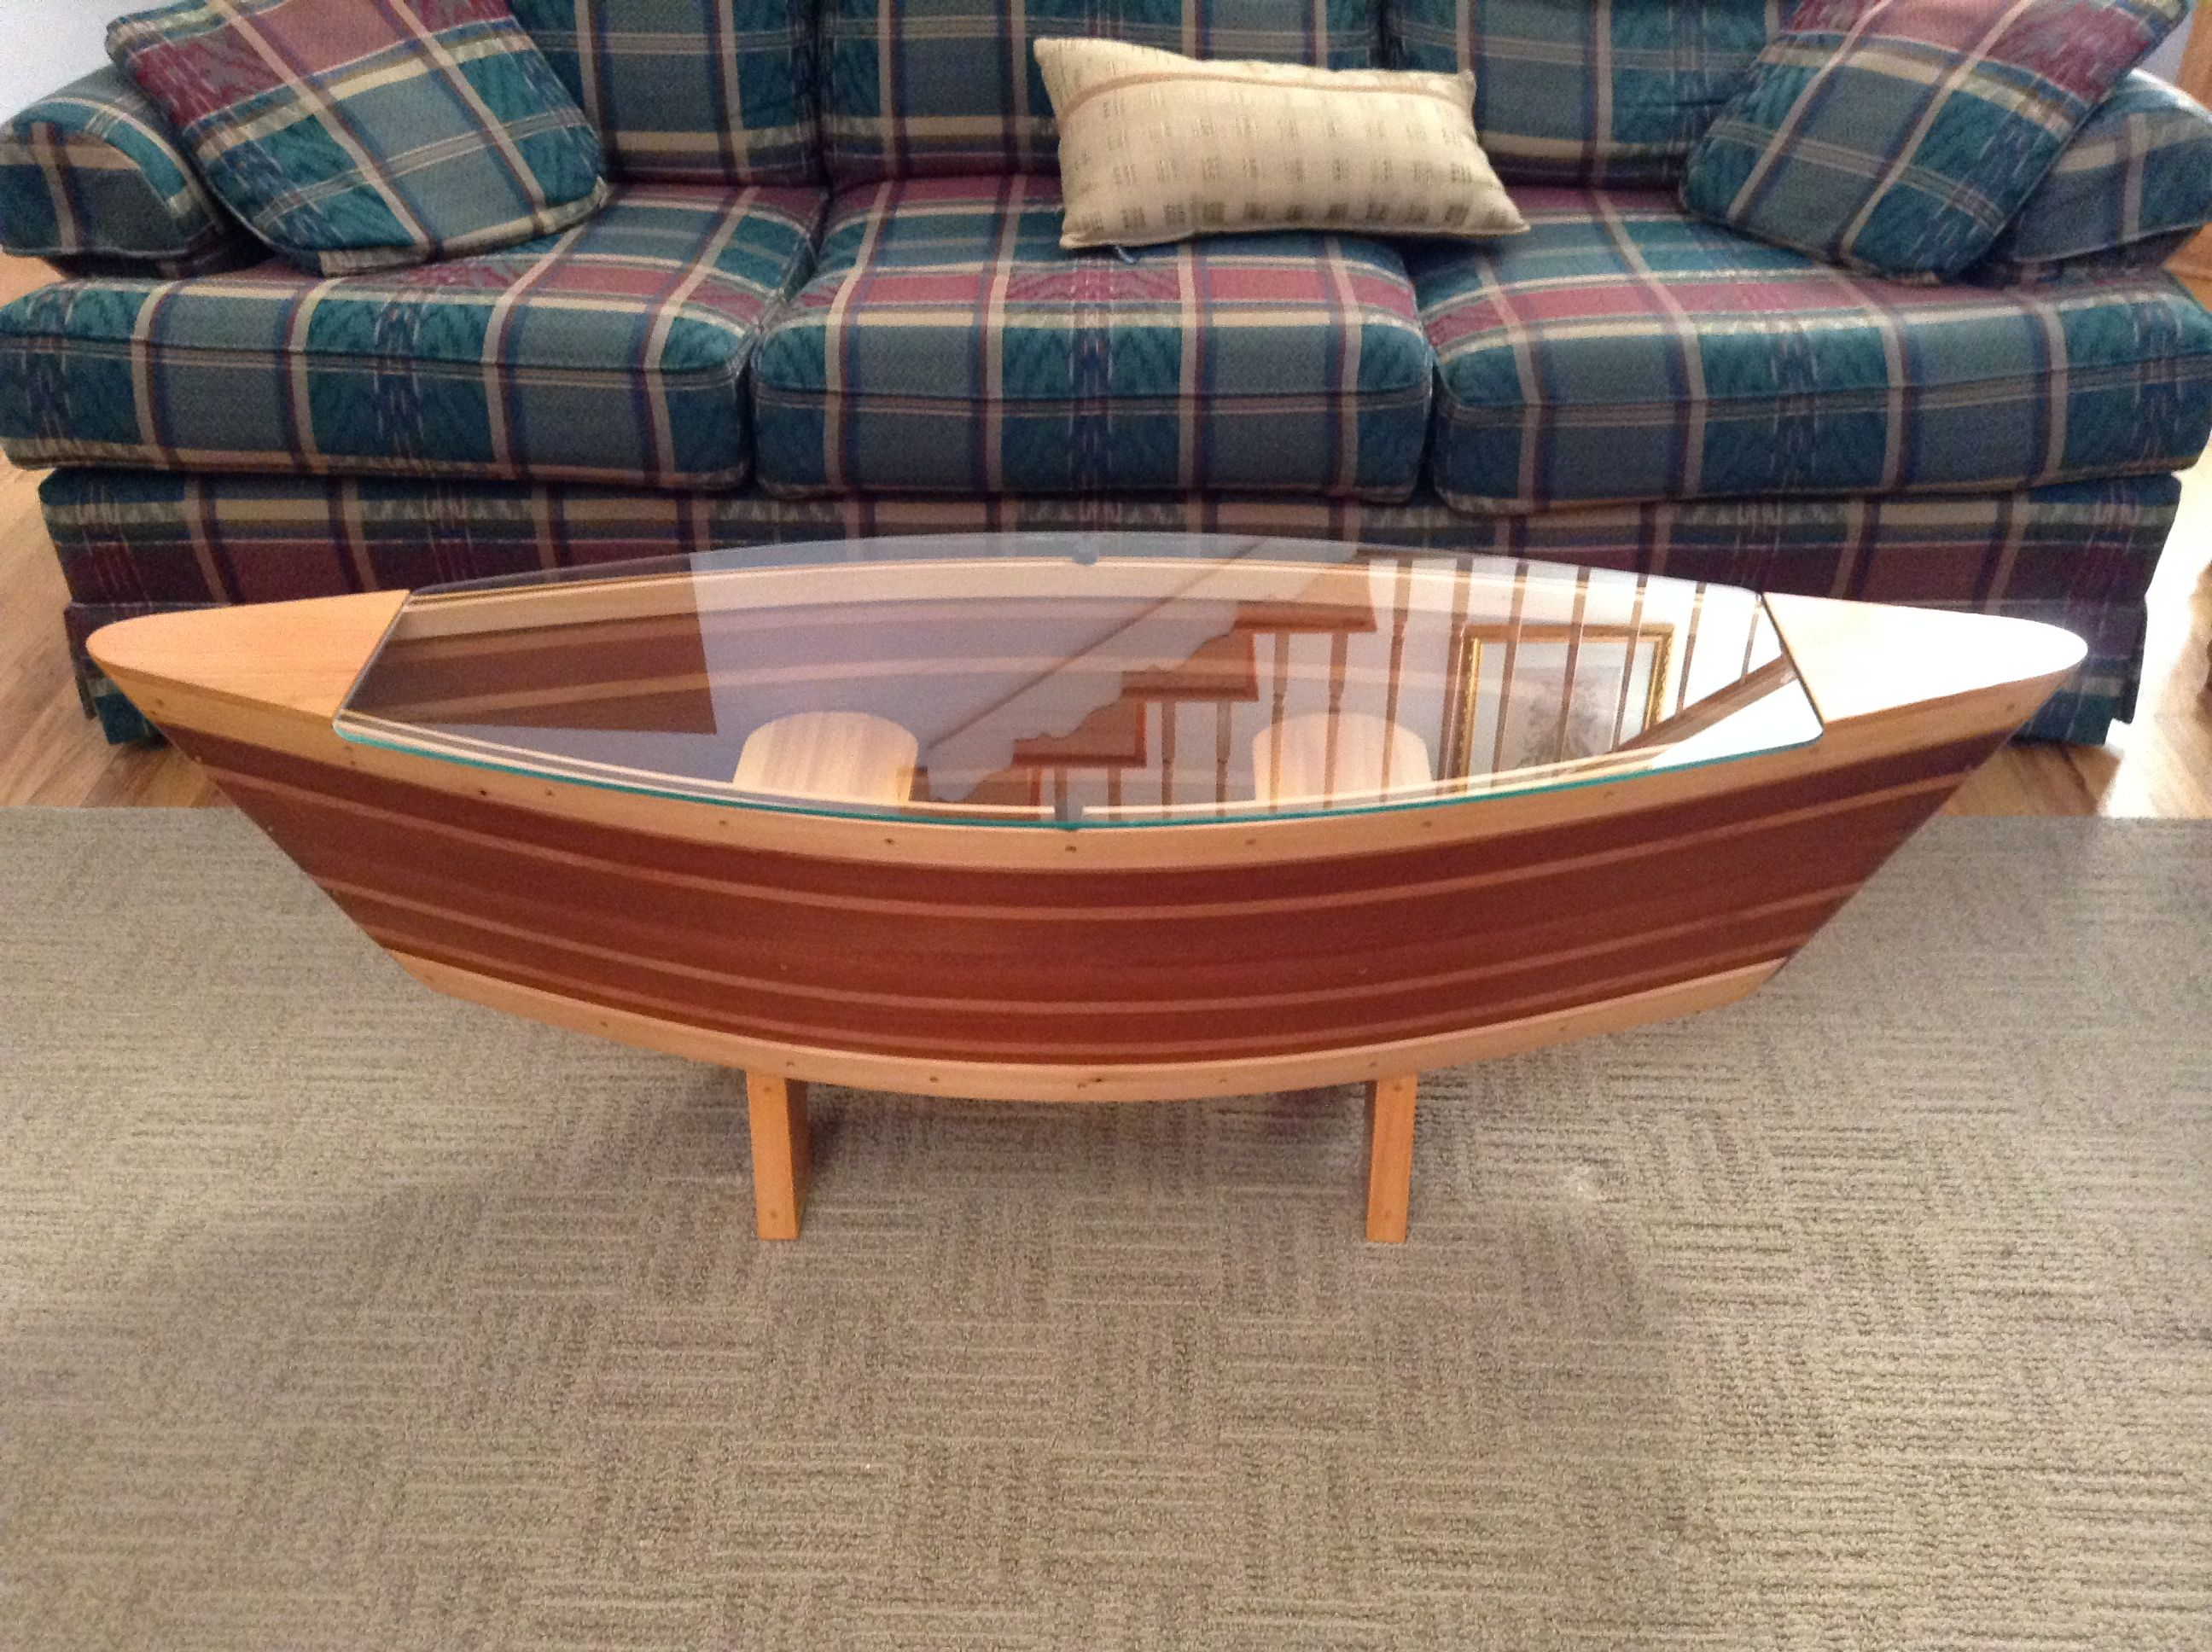 Vintage Row Boat Coffee Table |Dinghy Coffee Table